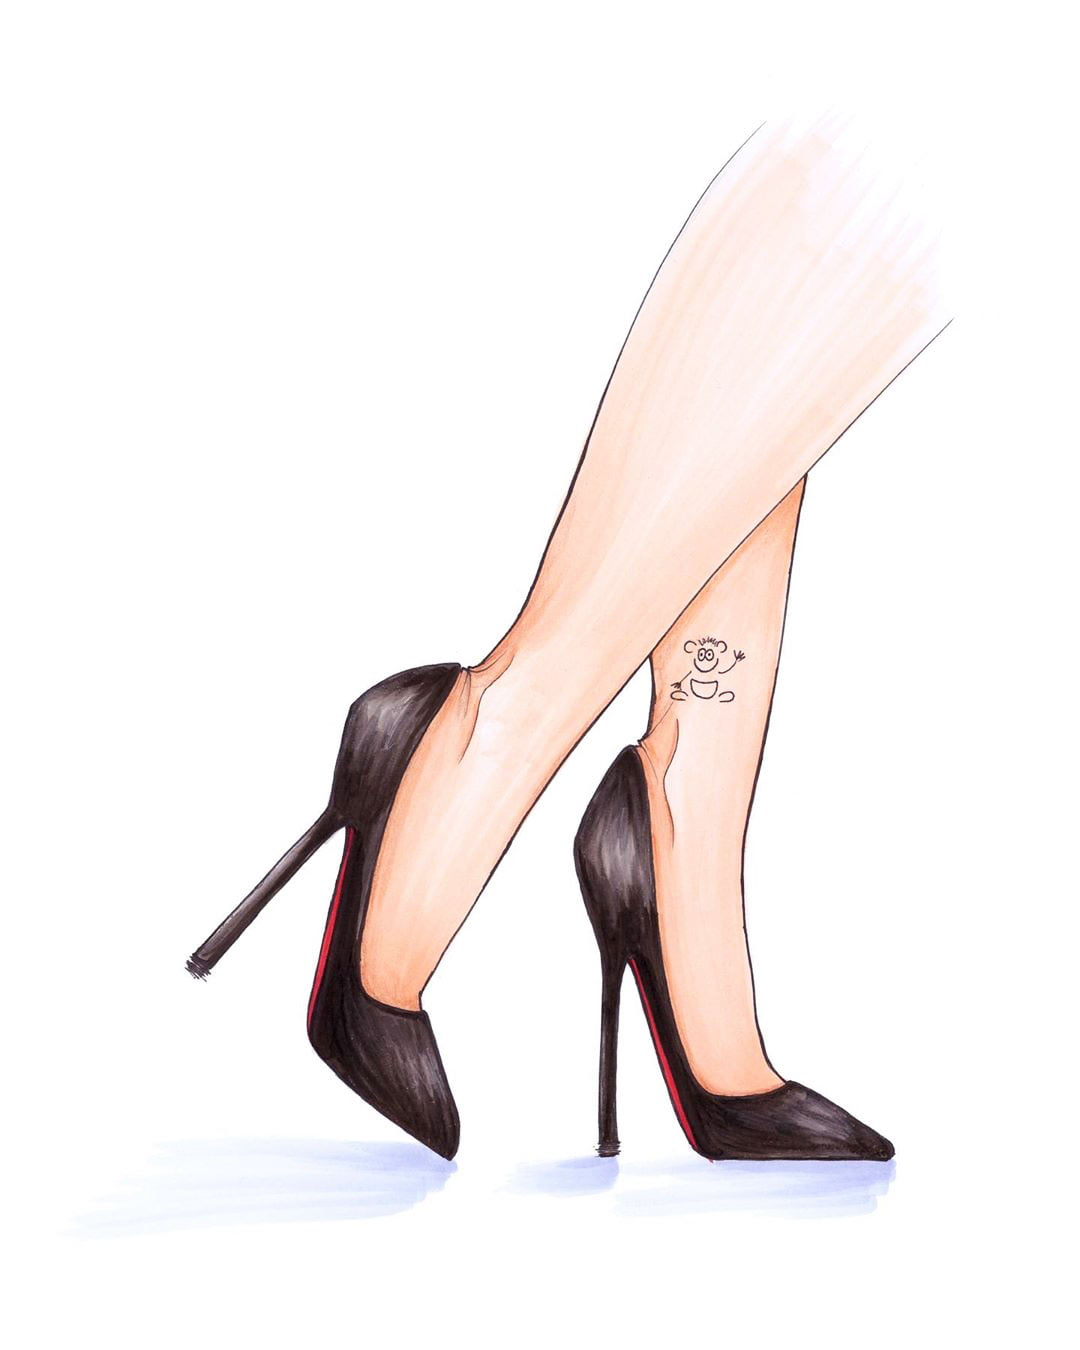 Cute Girly Ankle Tattoos - Ankle Tattoo